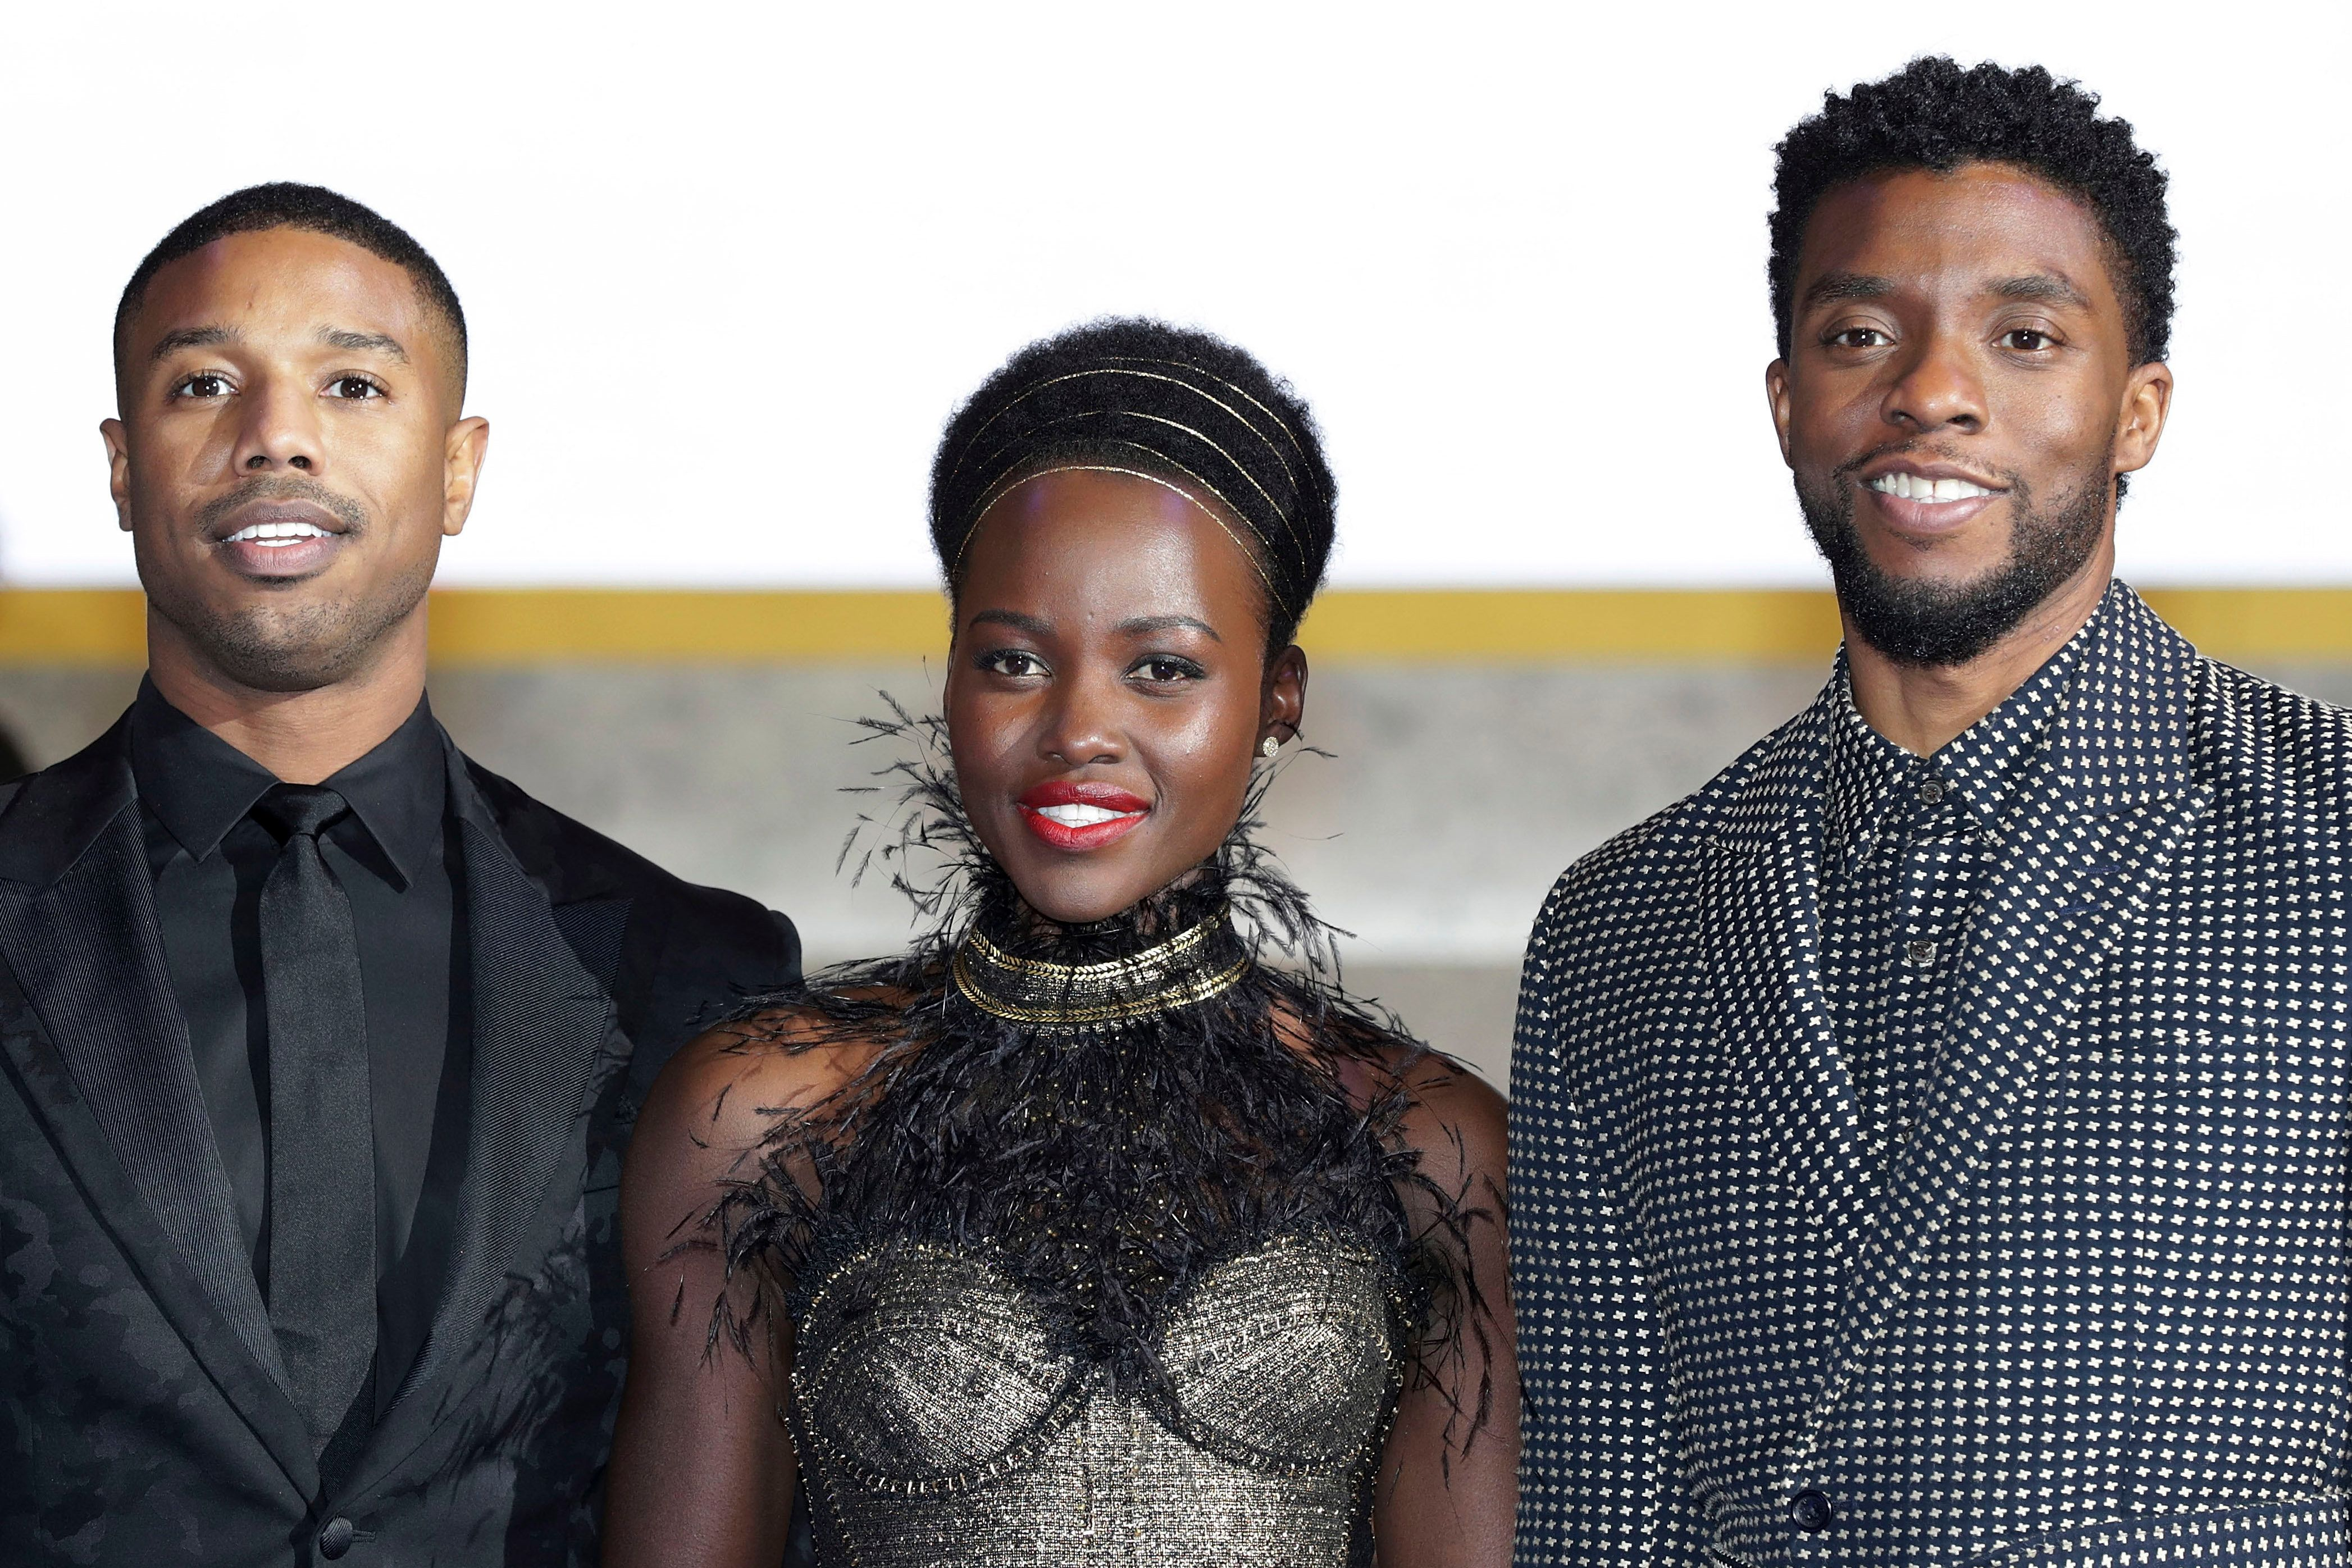 Black Panther Reviews Are In, Here's What The Critics Are Saying